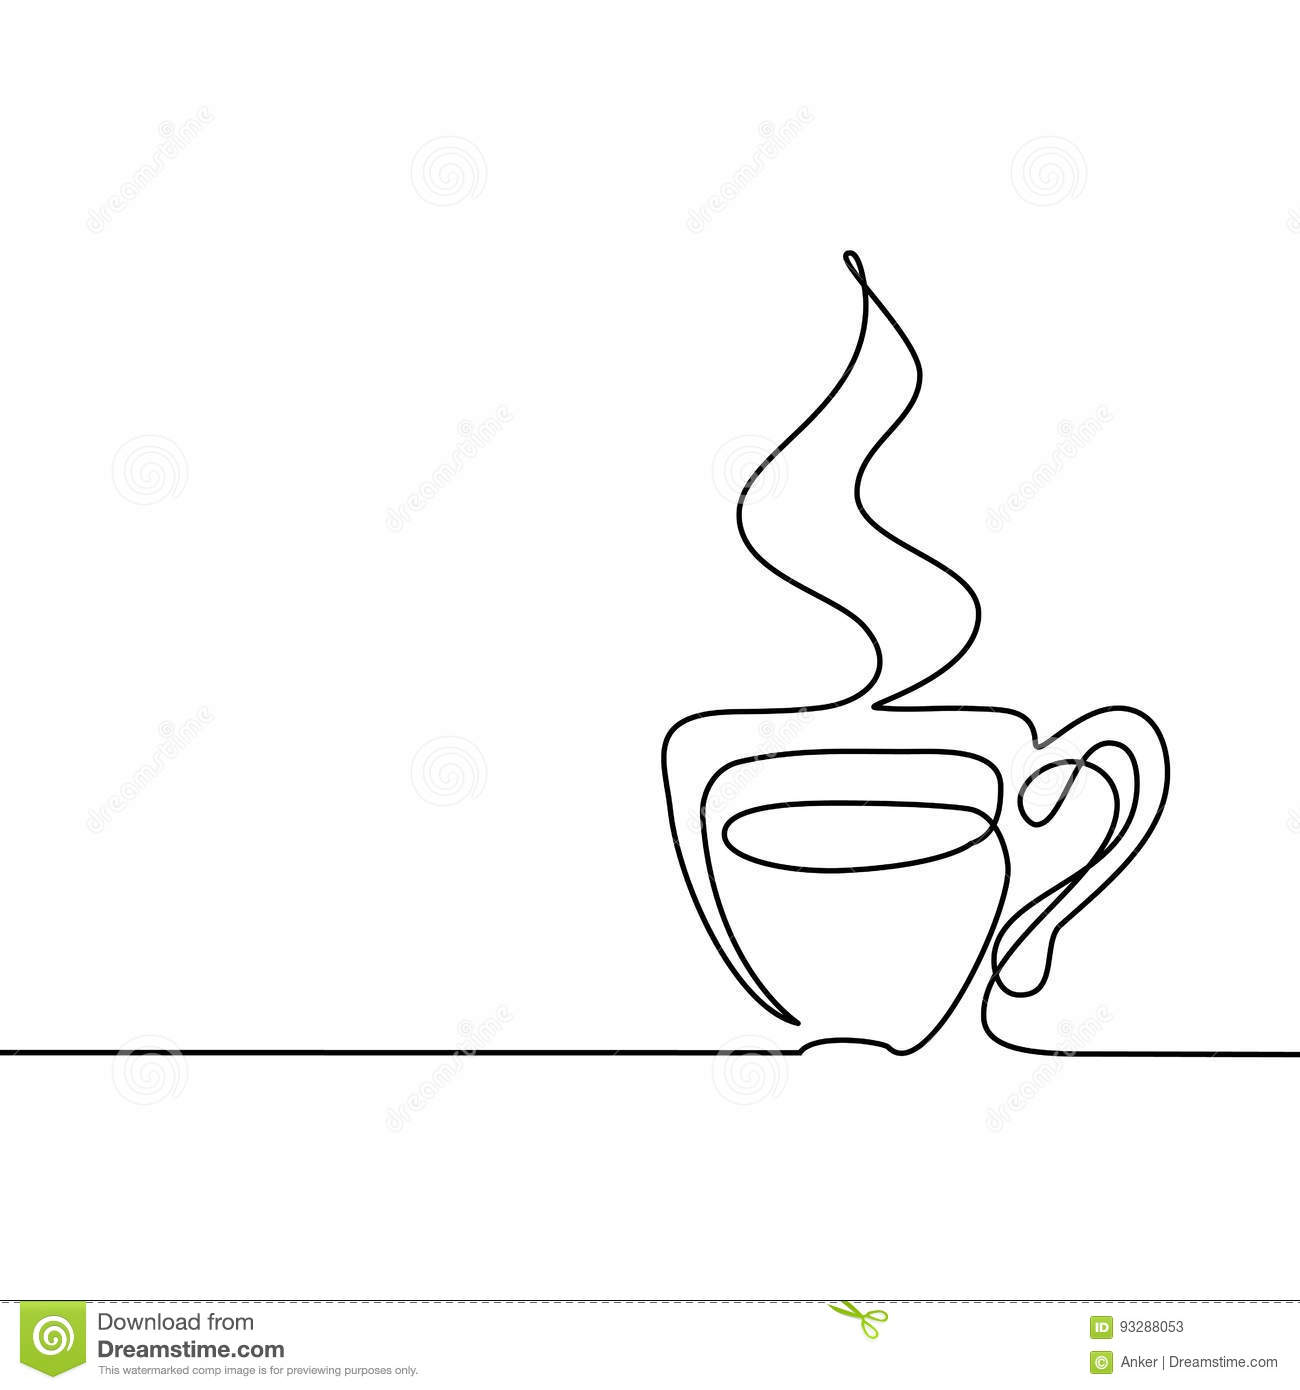 Vector Drawing Lines Html : Coffee logo cup contour line drawing vector illustration